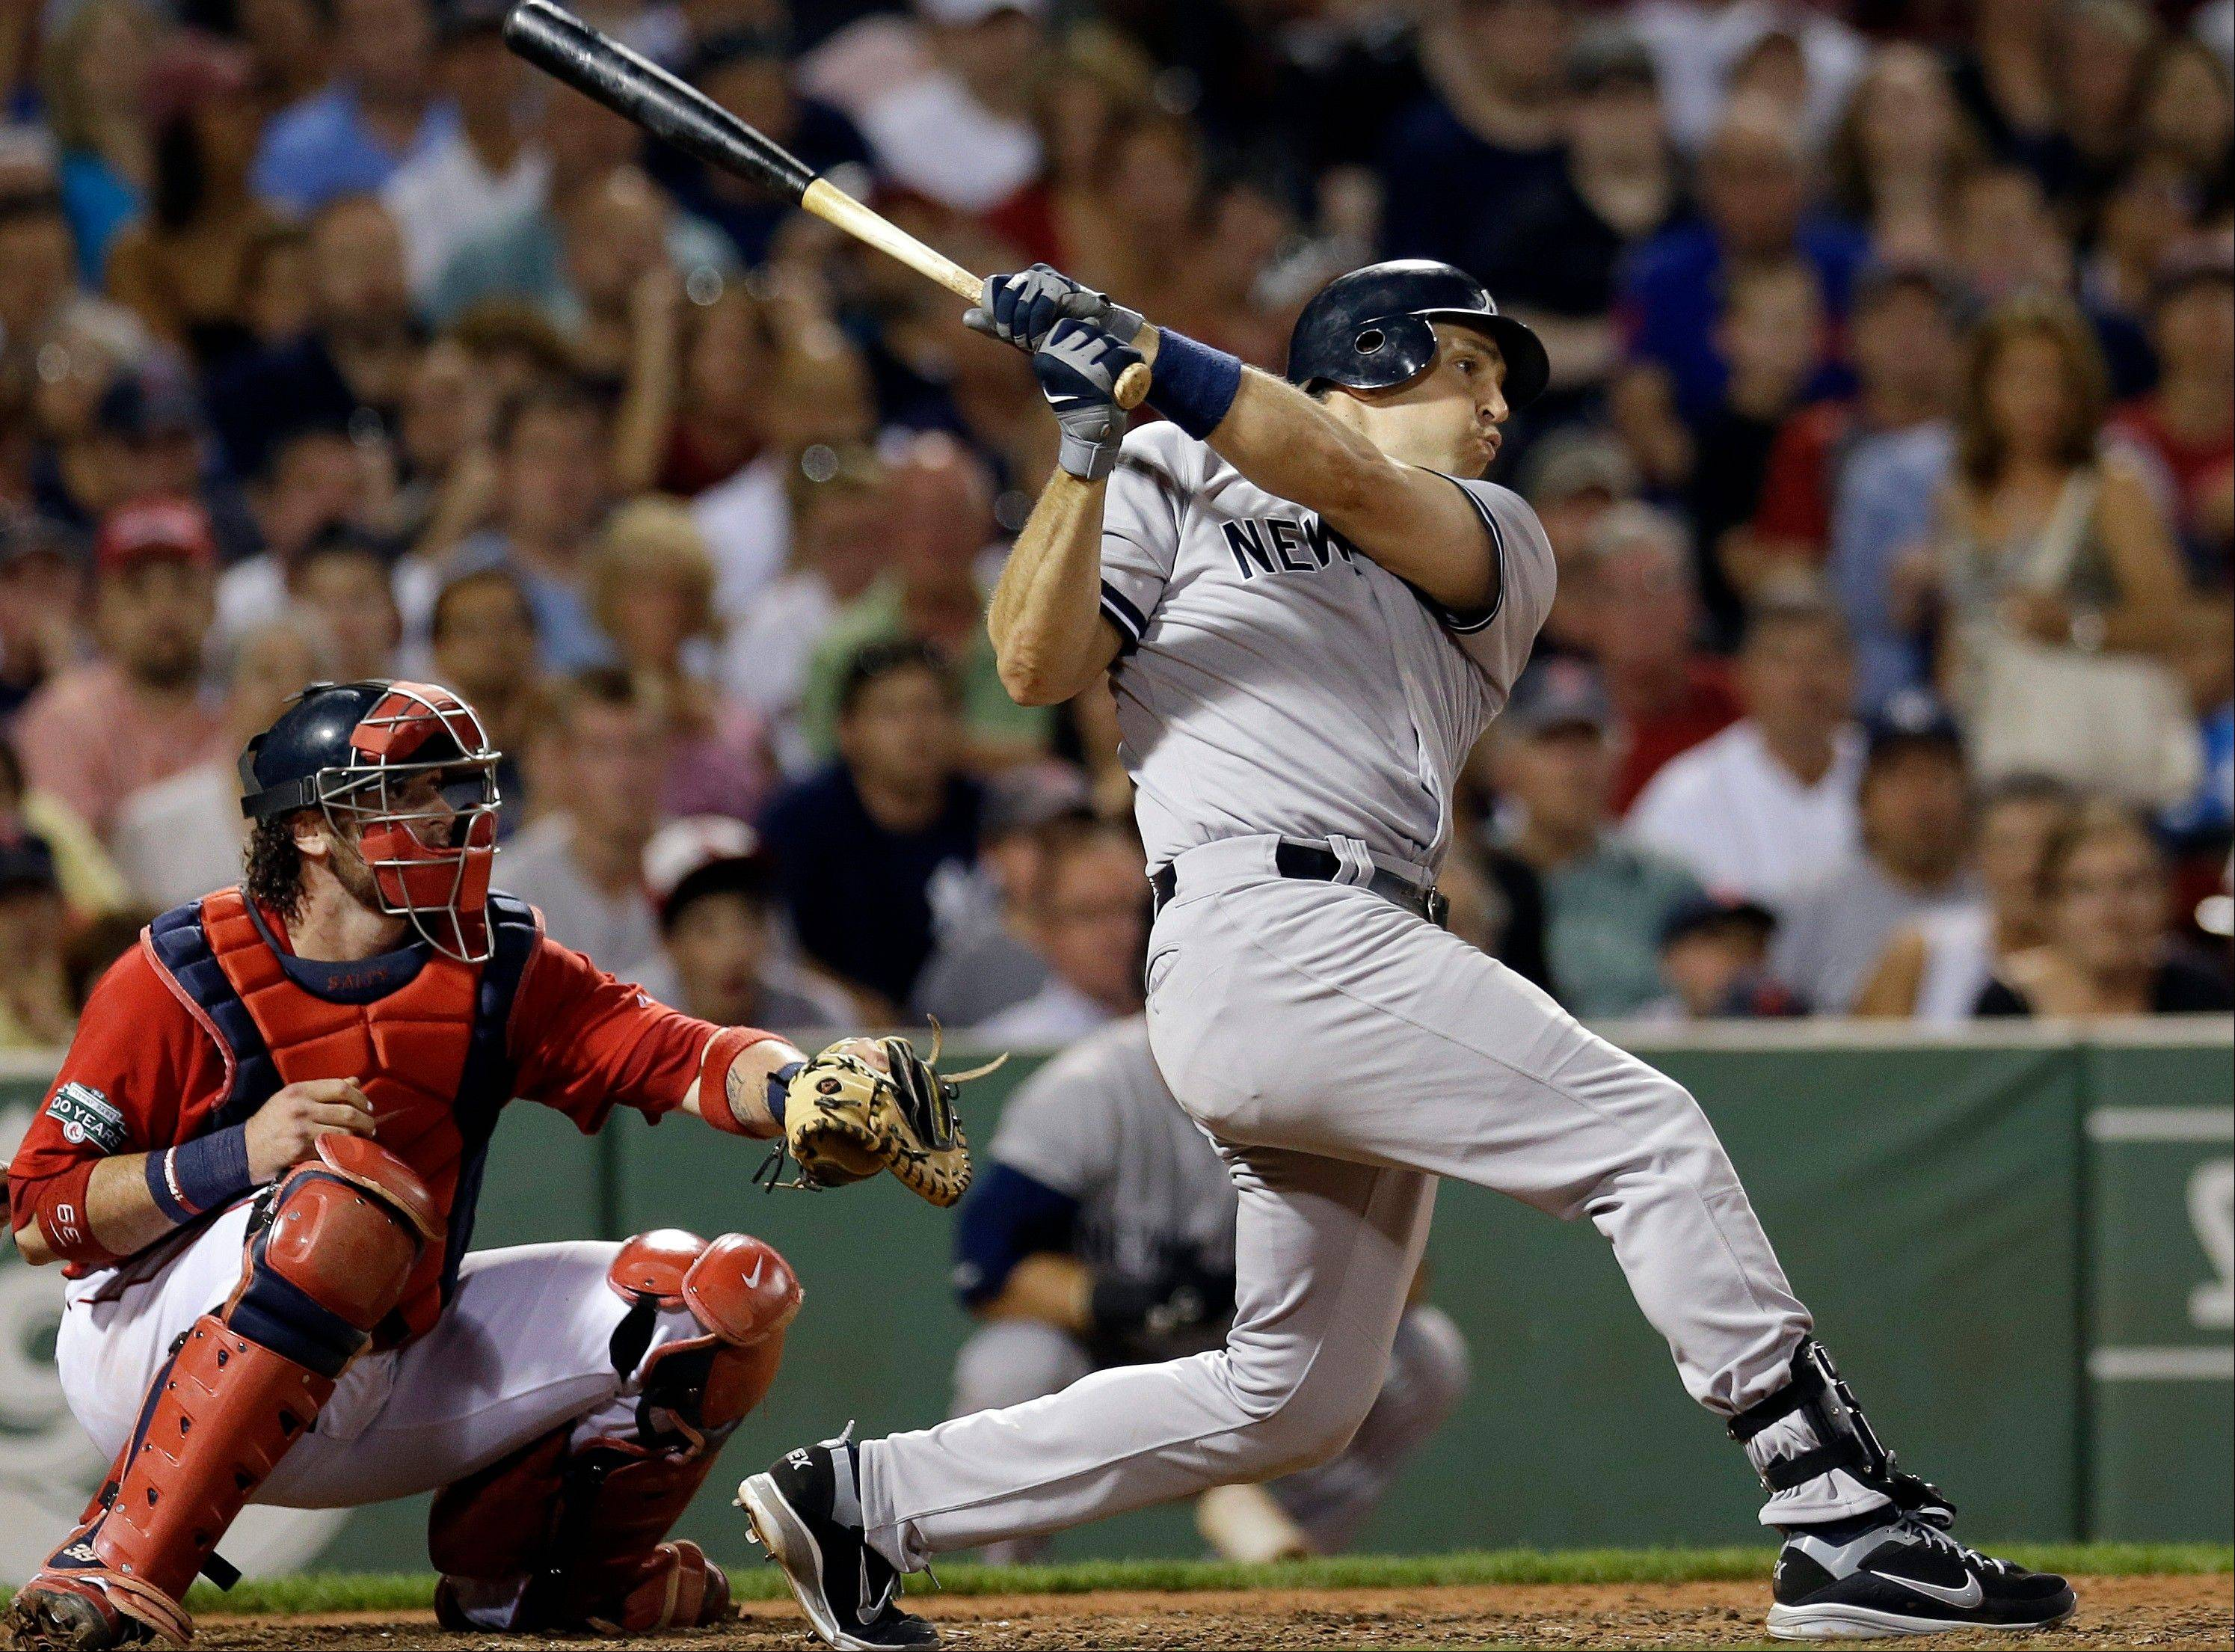 New York's Mark Teixeira follows through on a two-run triple as Red Sox catcher Jarrod Saltalamacchia watches in the seventh inning Friday in Boston.